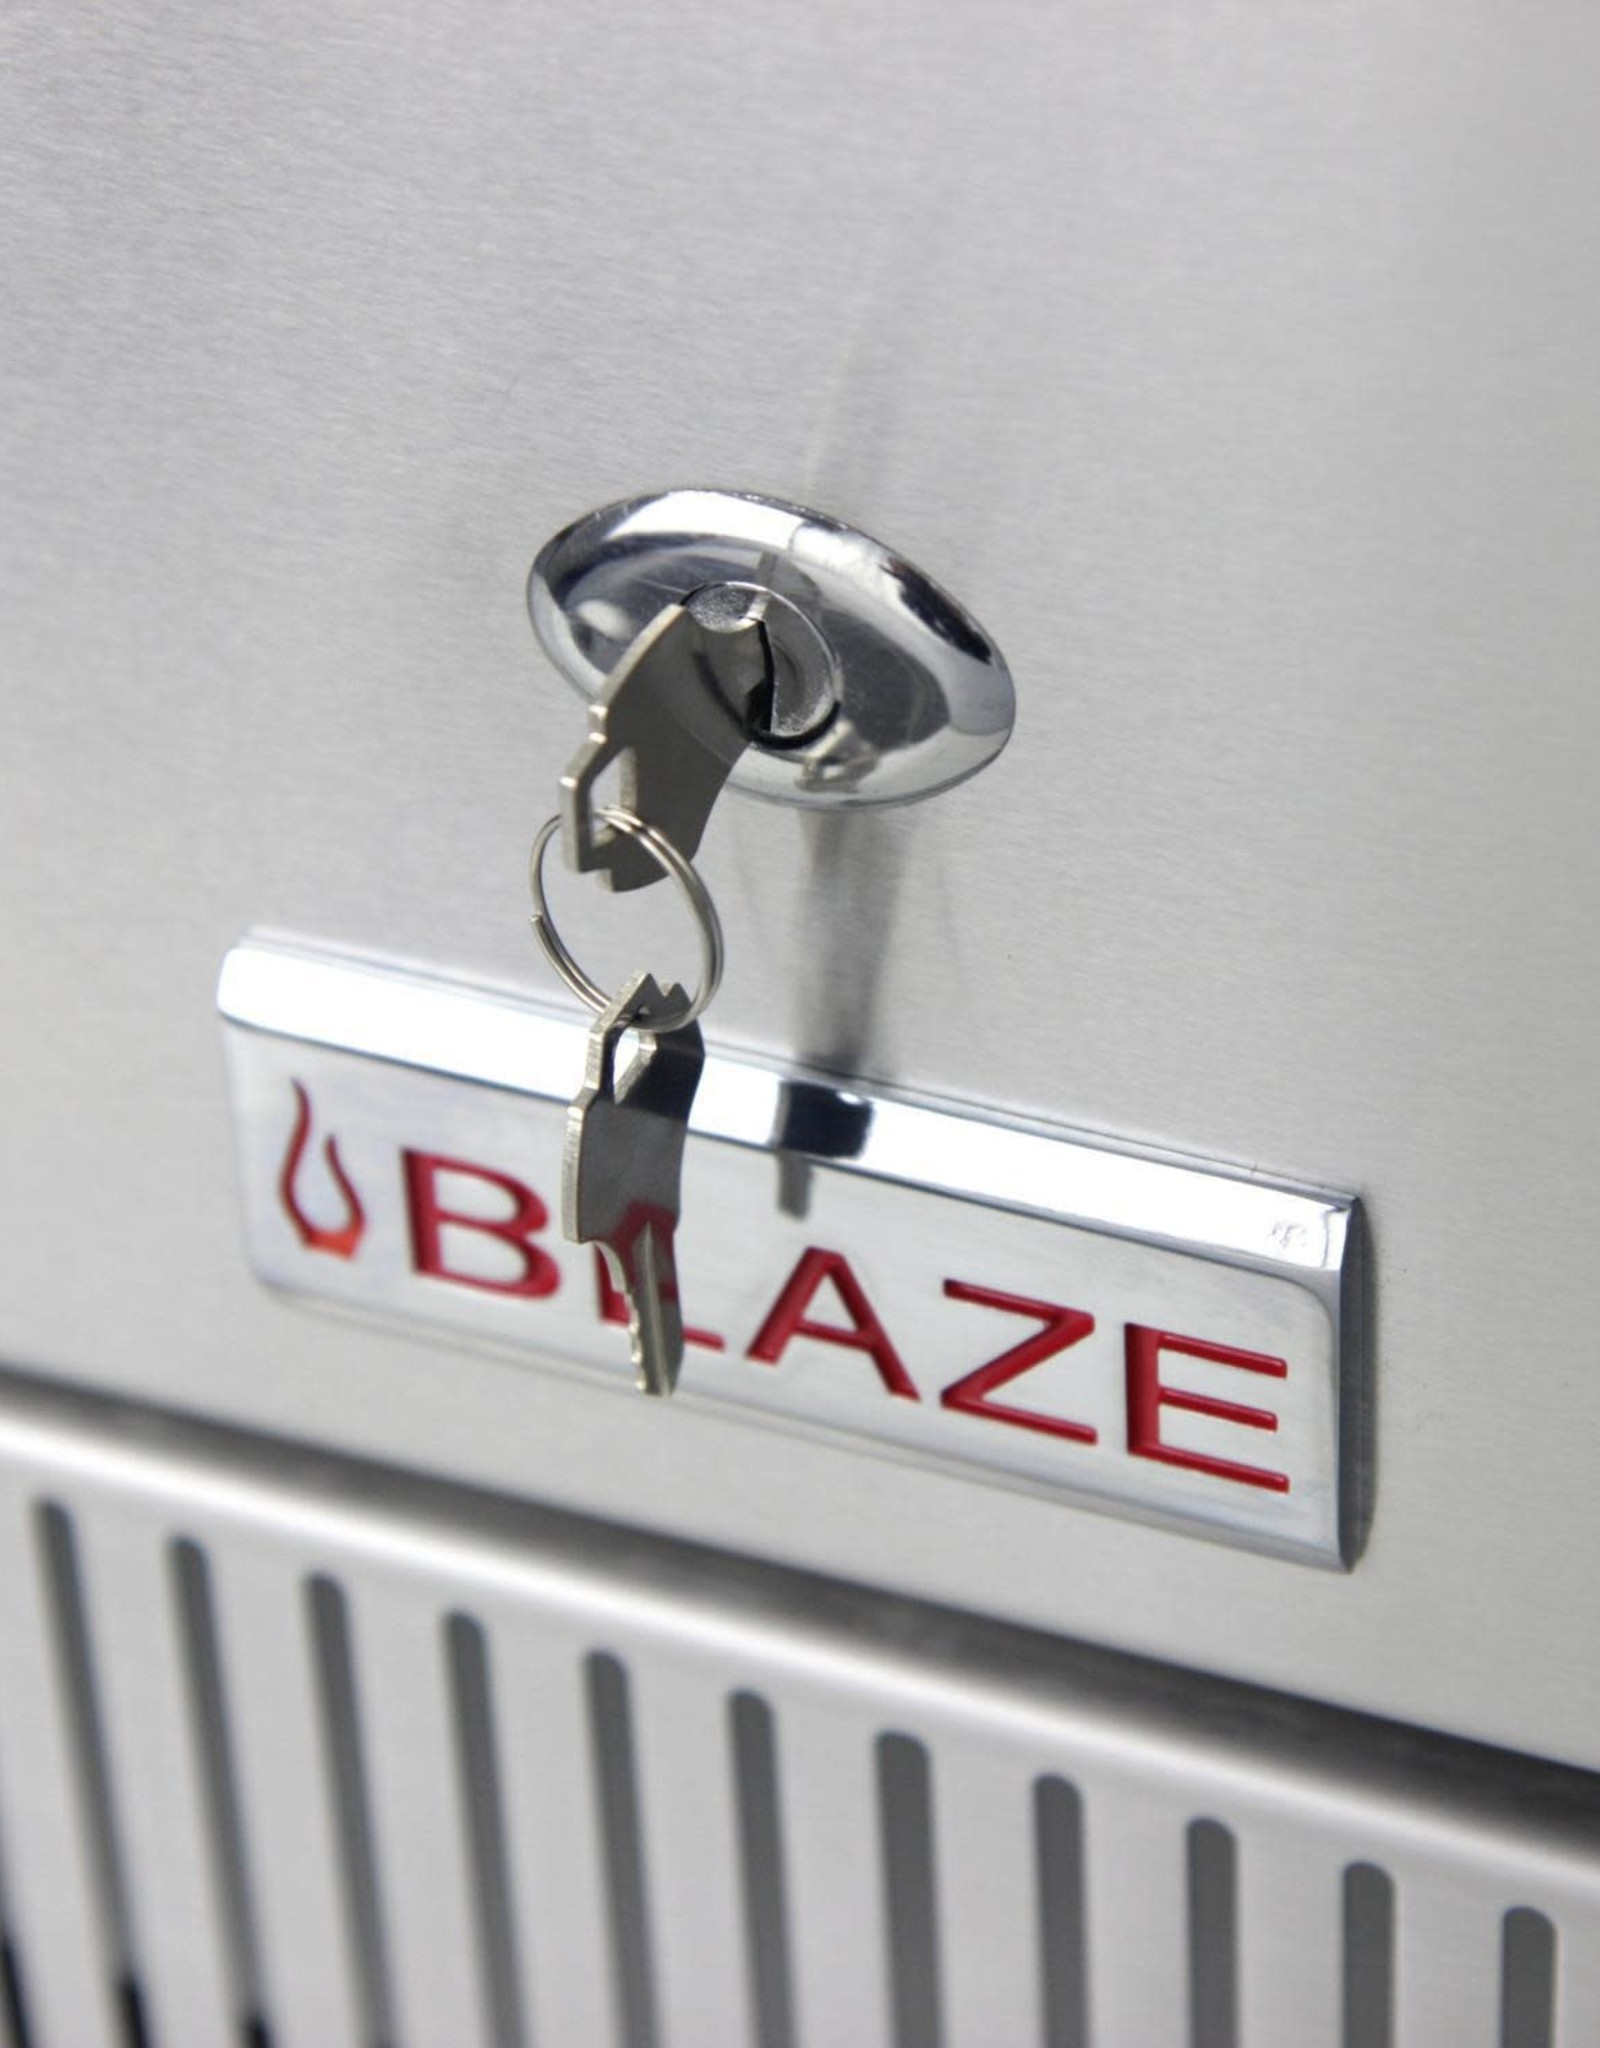 Blaze Outdoor Products Blaze 20.5-Inch 4.1 Cu. Ft. Outdoor Rated Compact Stainless Refrigerator - BLZ-SSRF-40DH